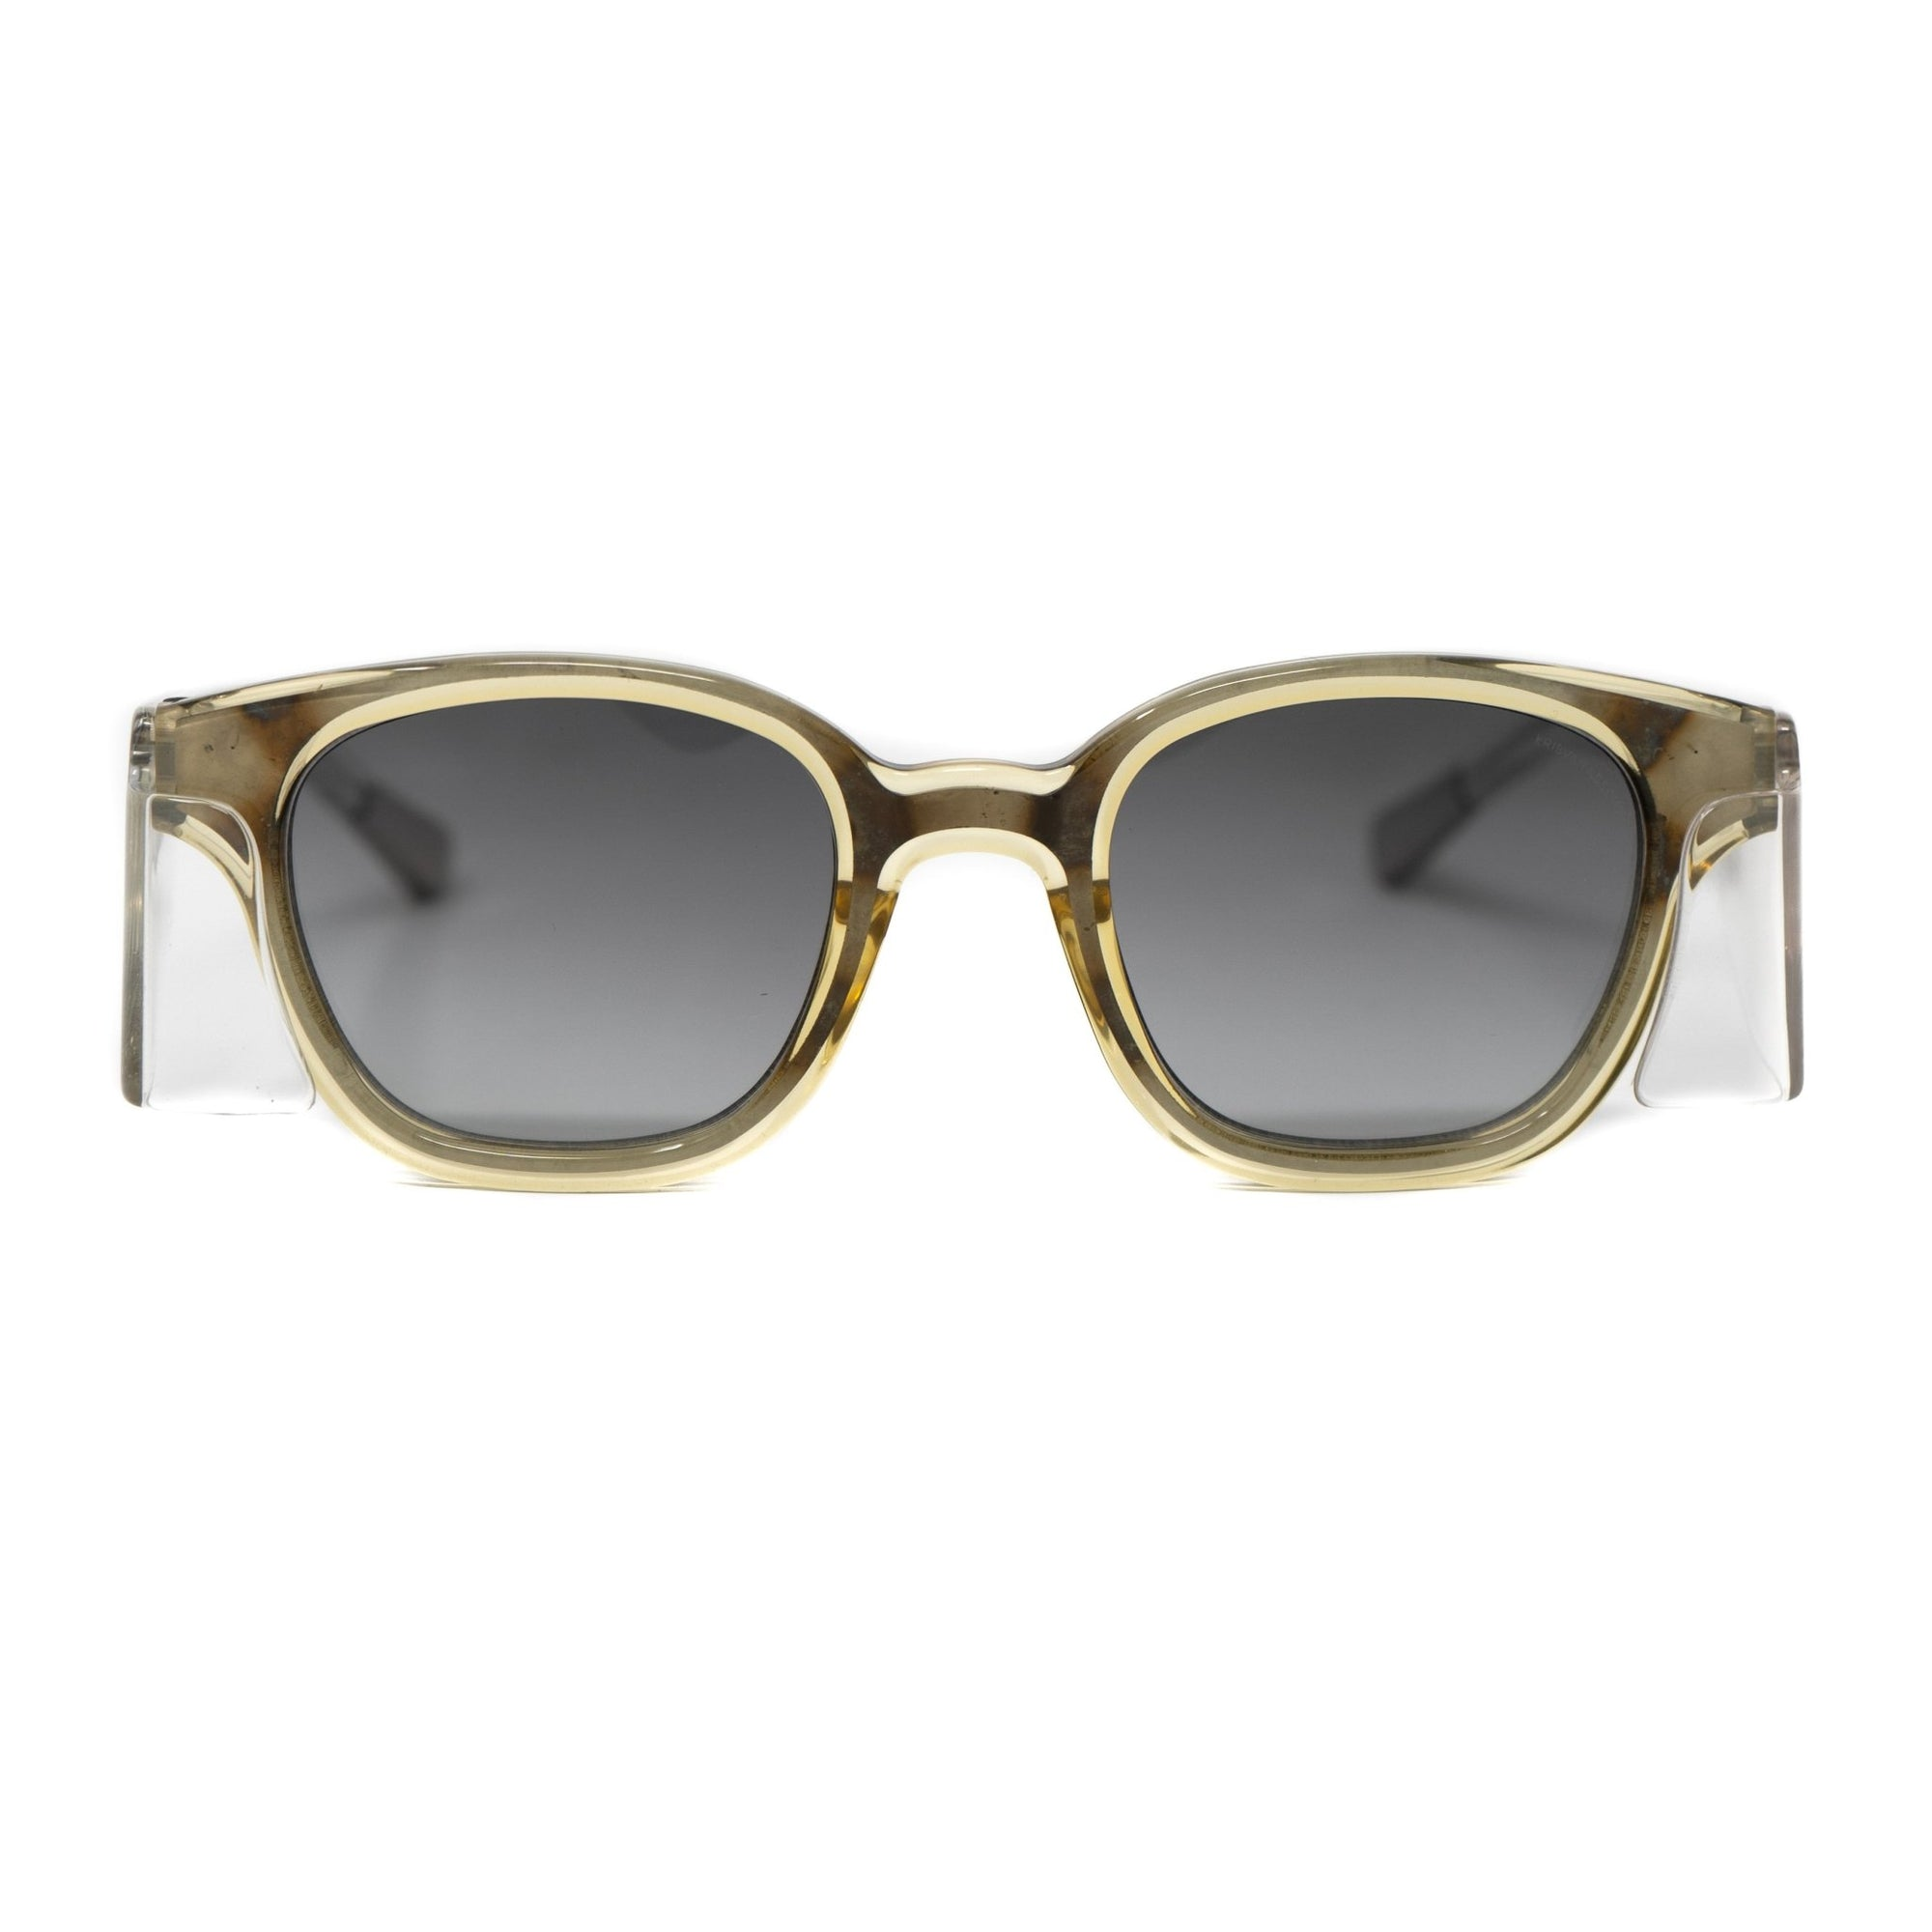 Kris Van Assche Sunglasses Unisex Side Piece Oval Translucent Yellow and Grey Lenses Category 2 - KVA9C4SUN - Watches & Crystals